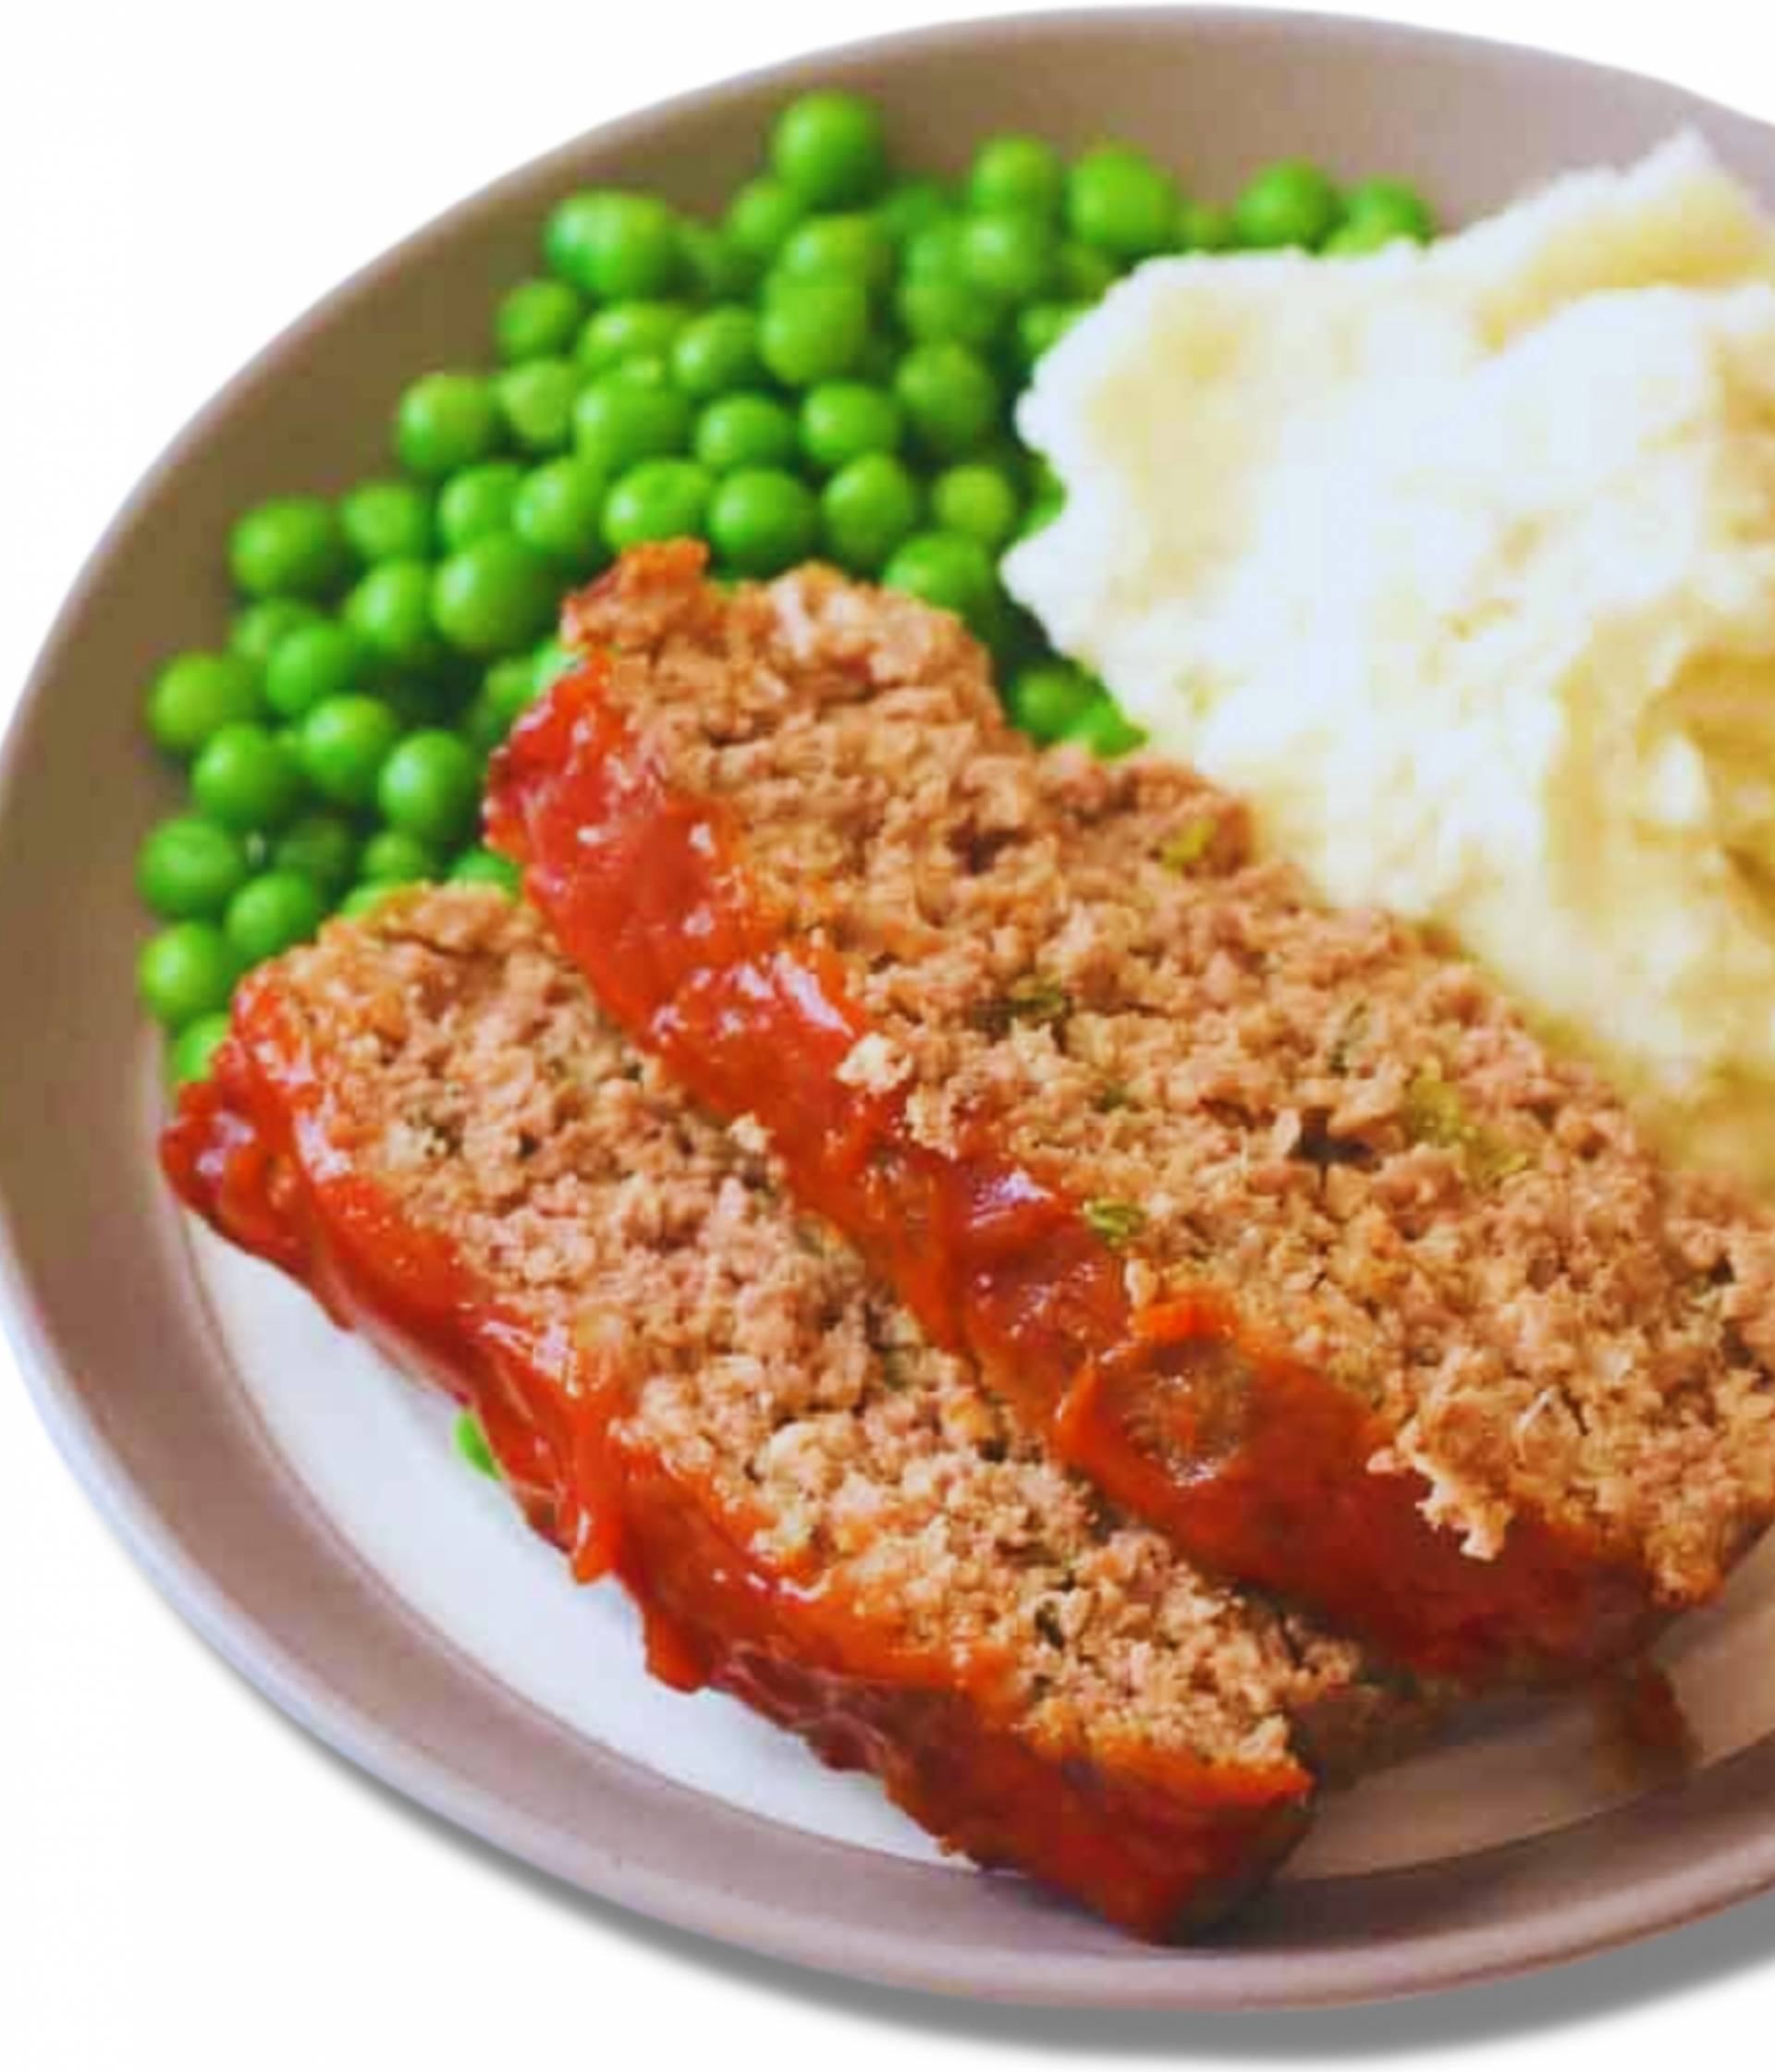 Turkey Meatloaf | Served with Mash Potatoes and Green Peas